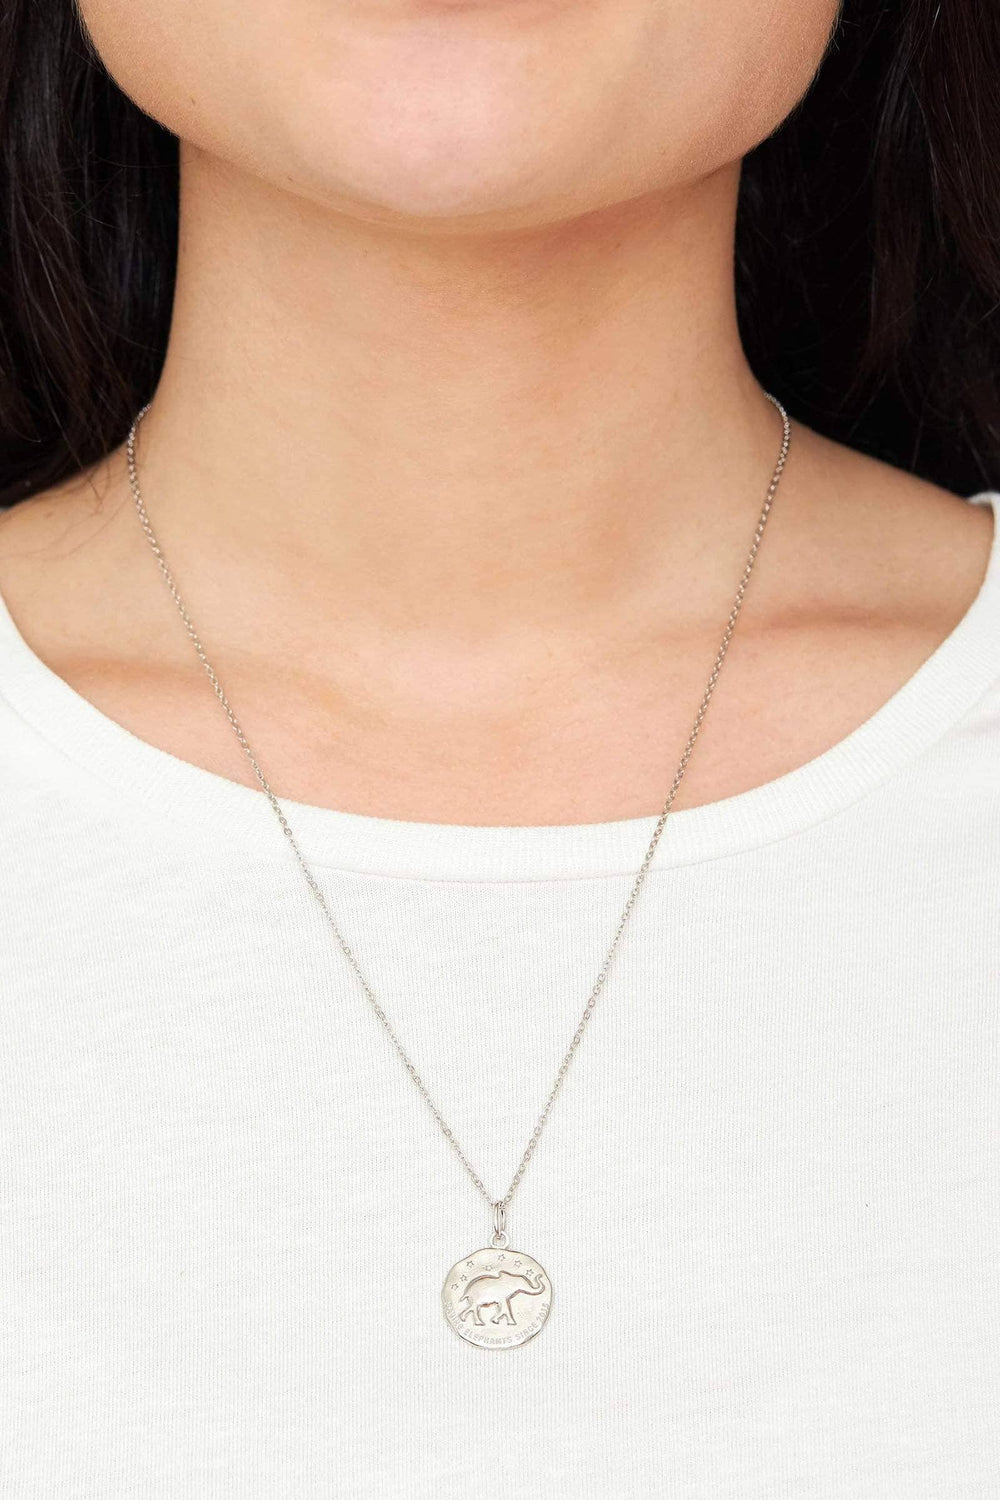 Ivory Ella Jewelry Silver Casted Coin Necklace